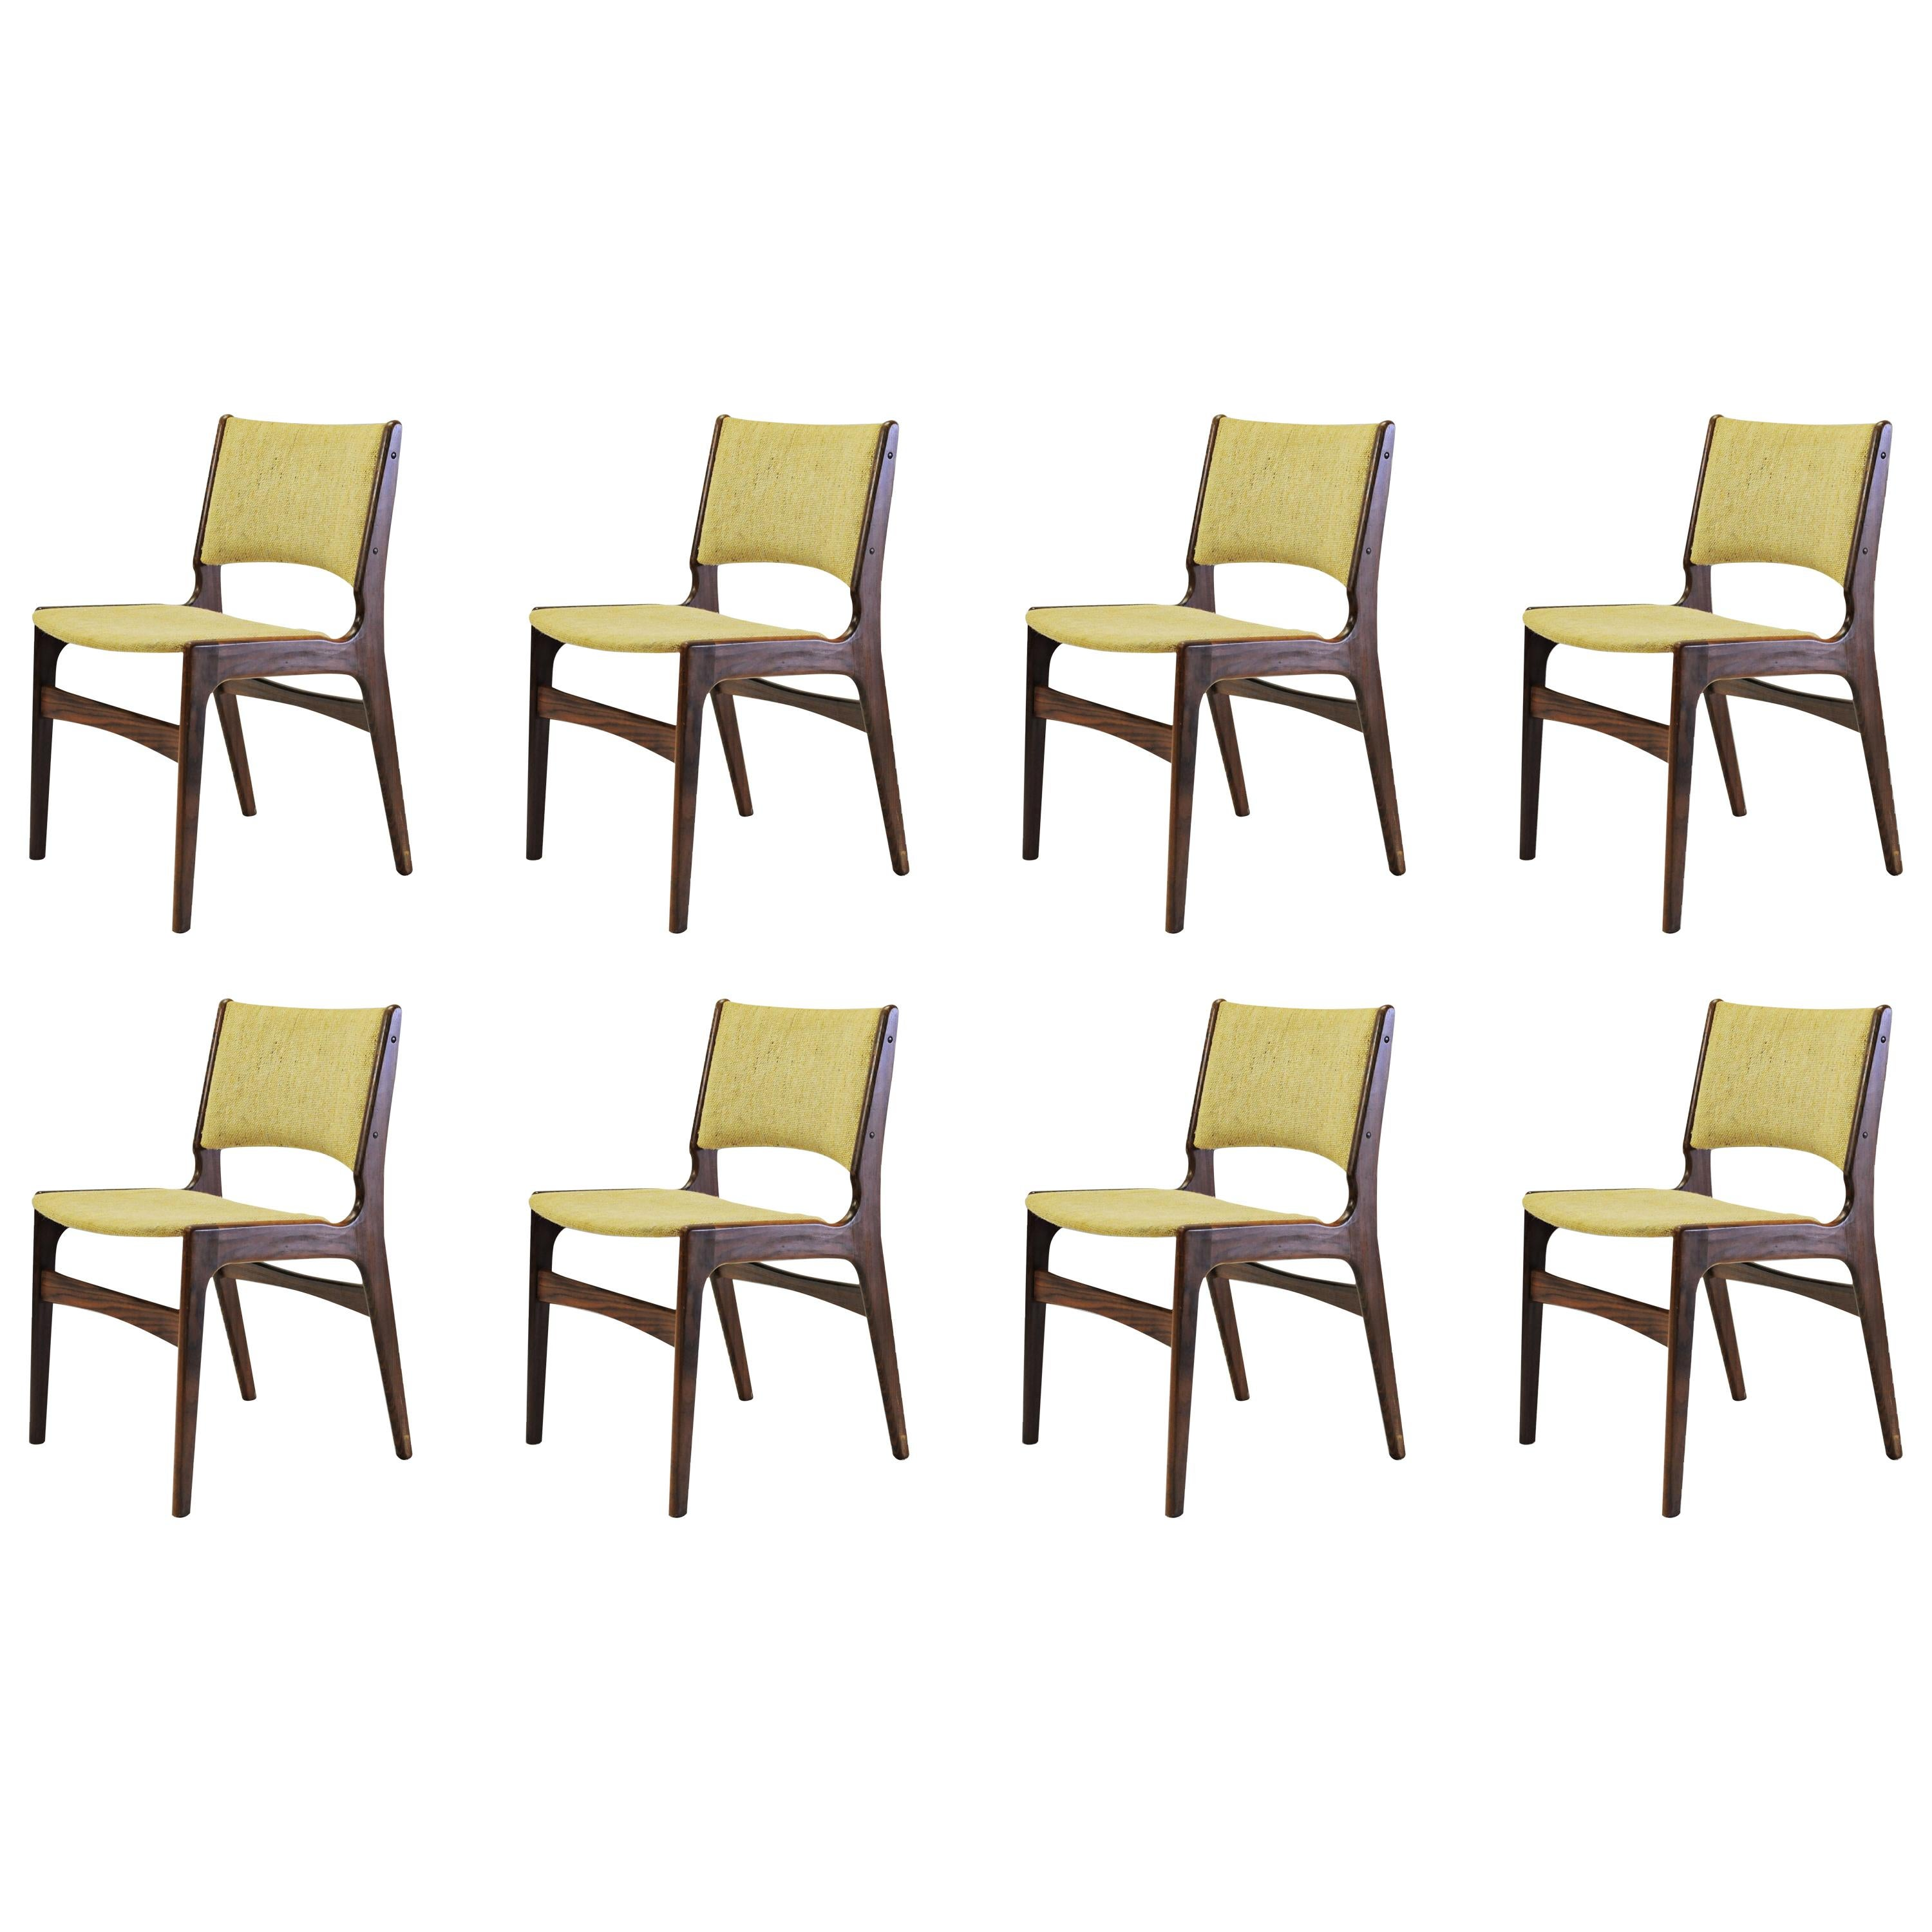 Set of Eight Refinished Erik Buch Dining Chairs in Solid Teak, Inc. Reupholstery